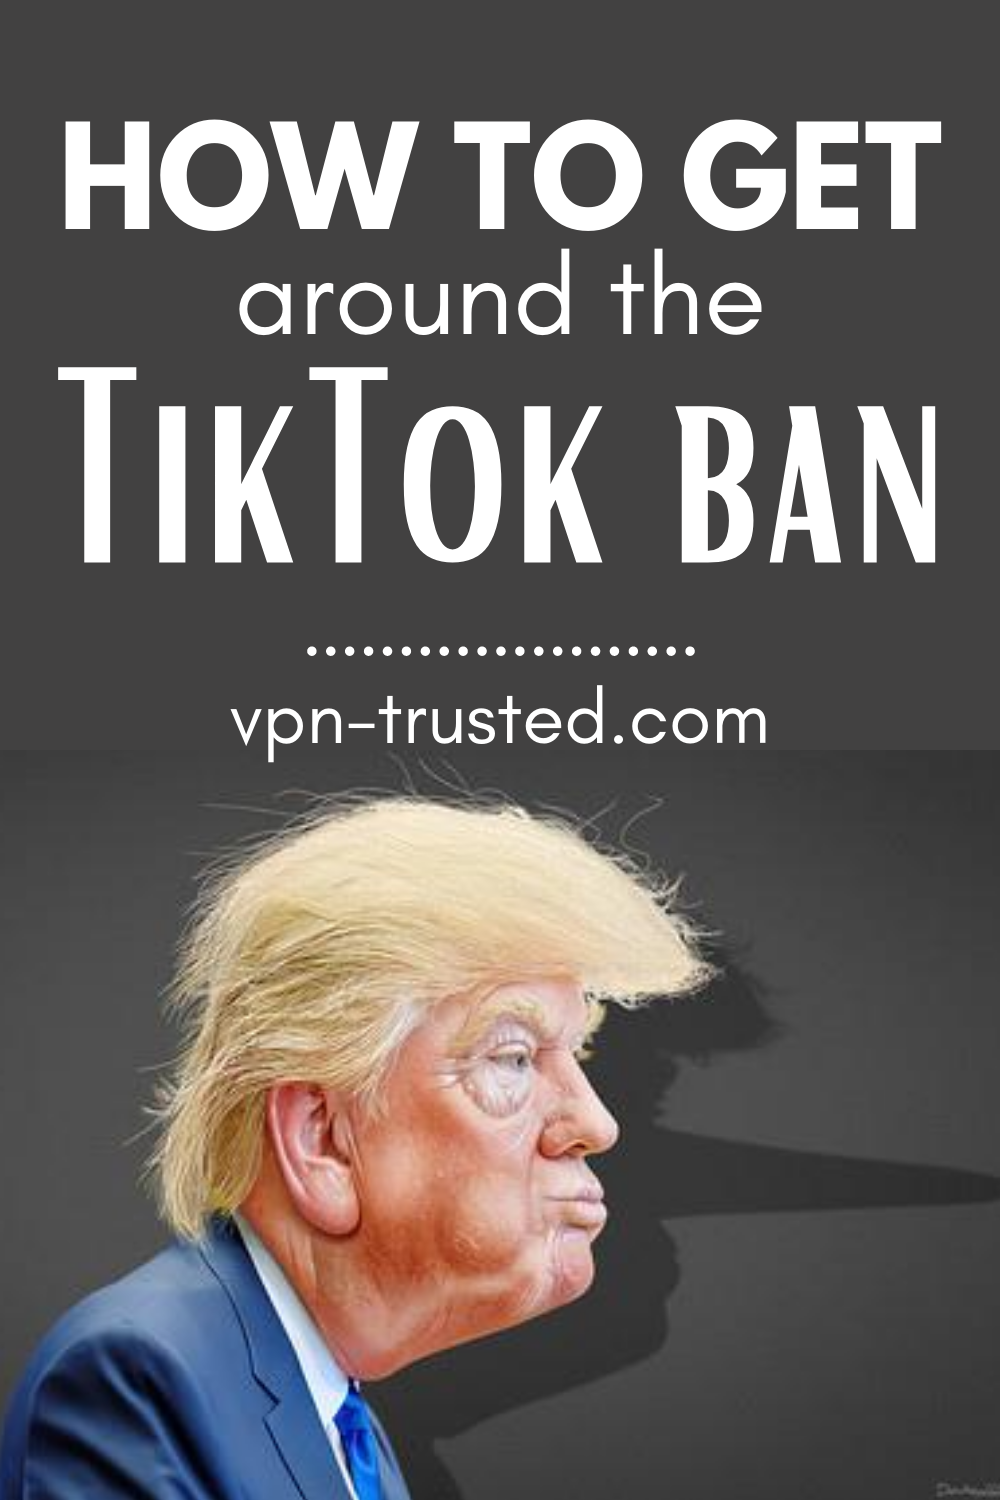 How To Bypass The Tiktok Ban Presidential Quotes Funny Quotes Haha Funny